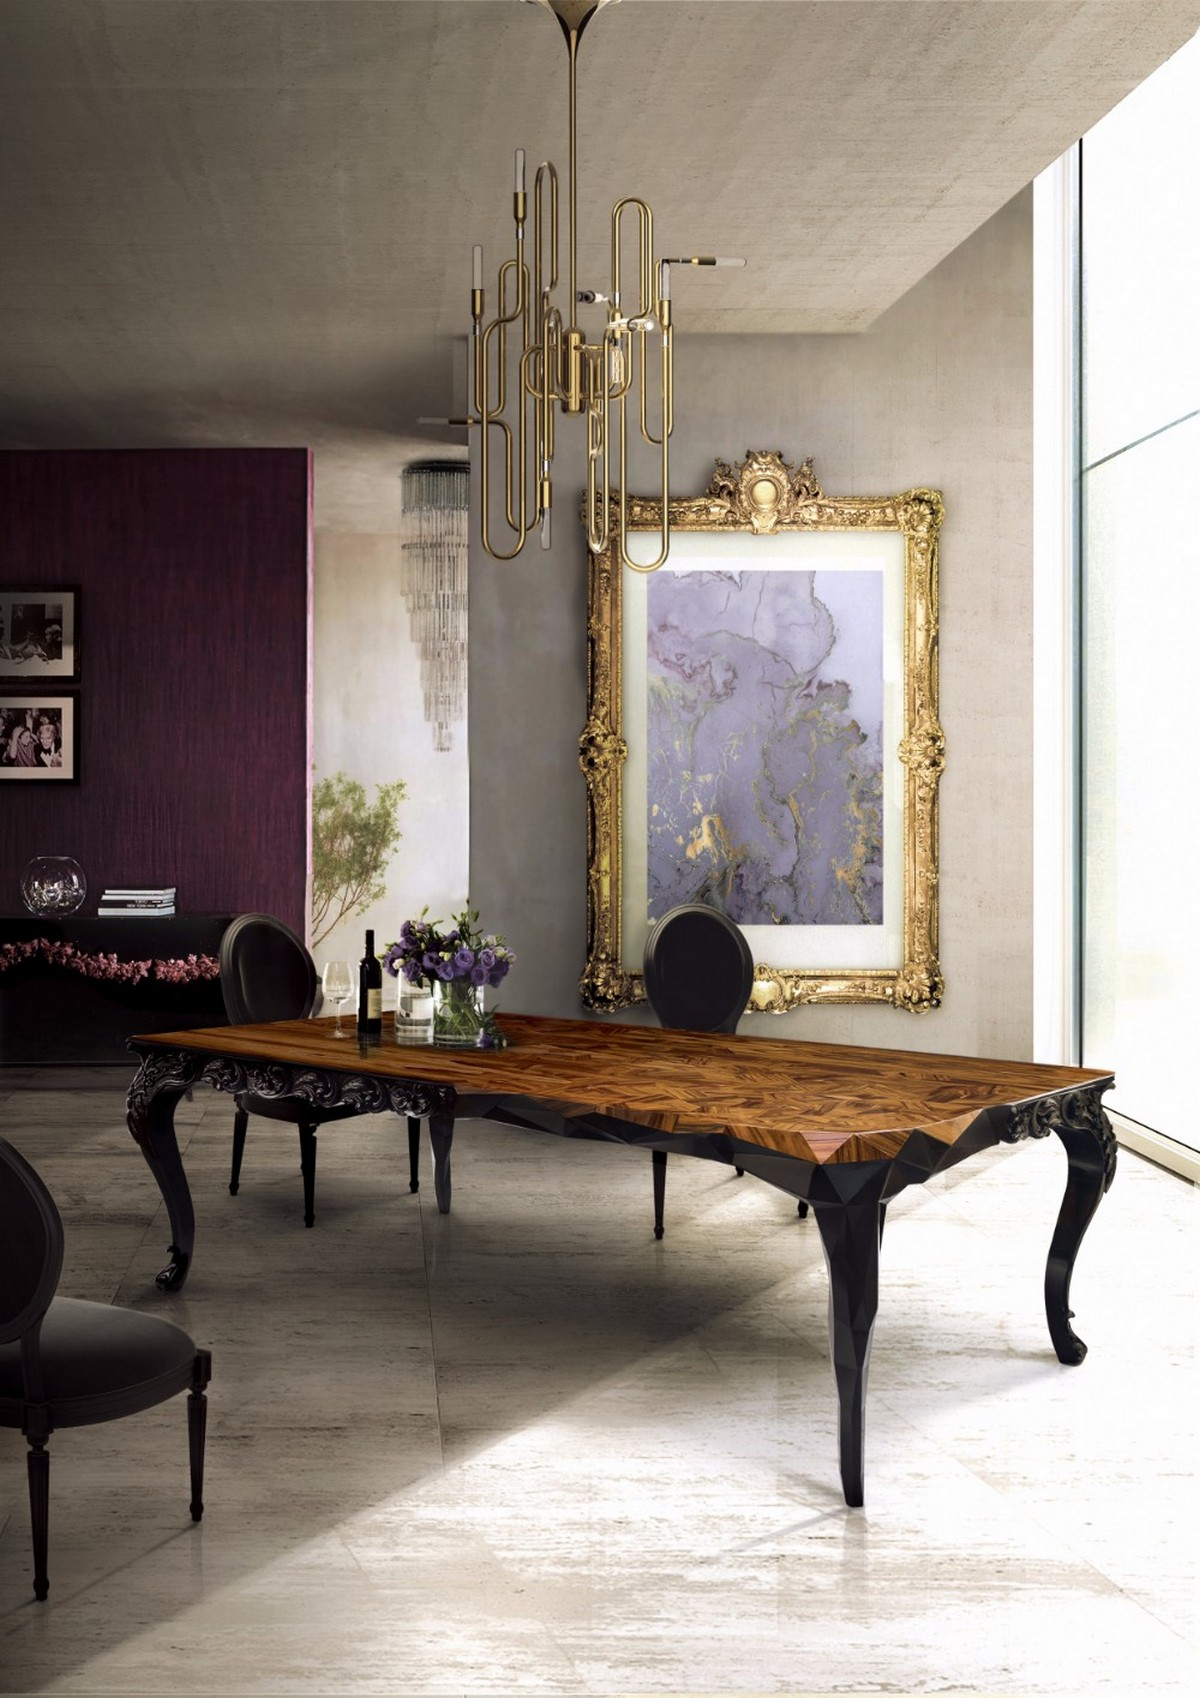 modern dining table designs 5 Modern Dining Table Designs You Shouldn't Miss royal2